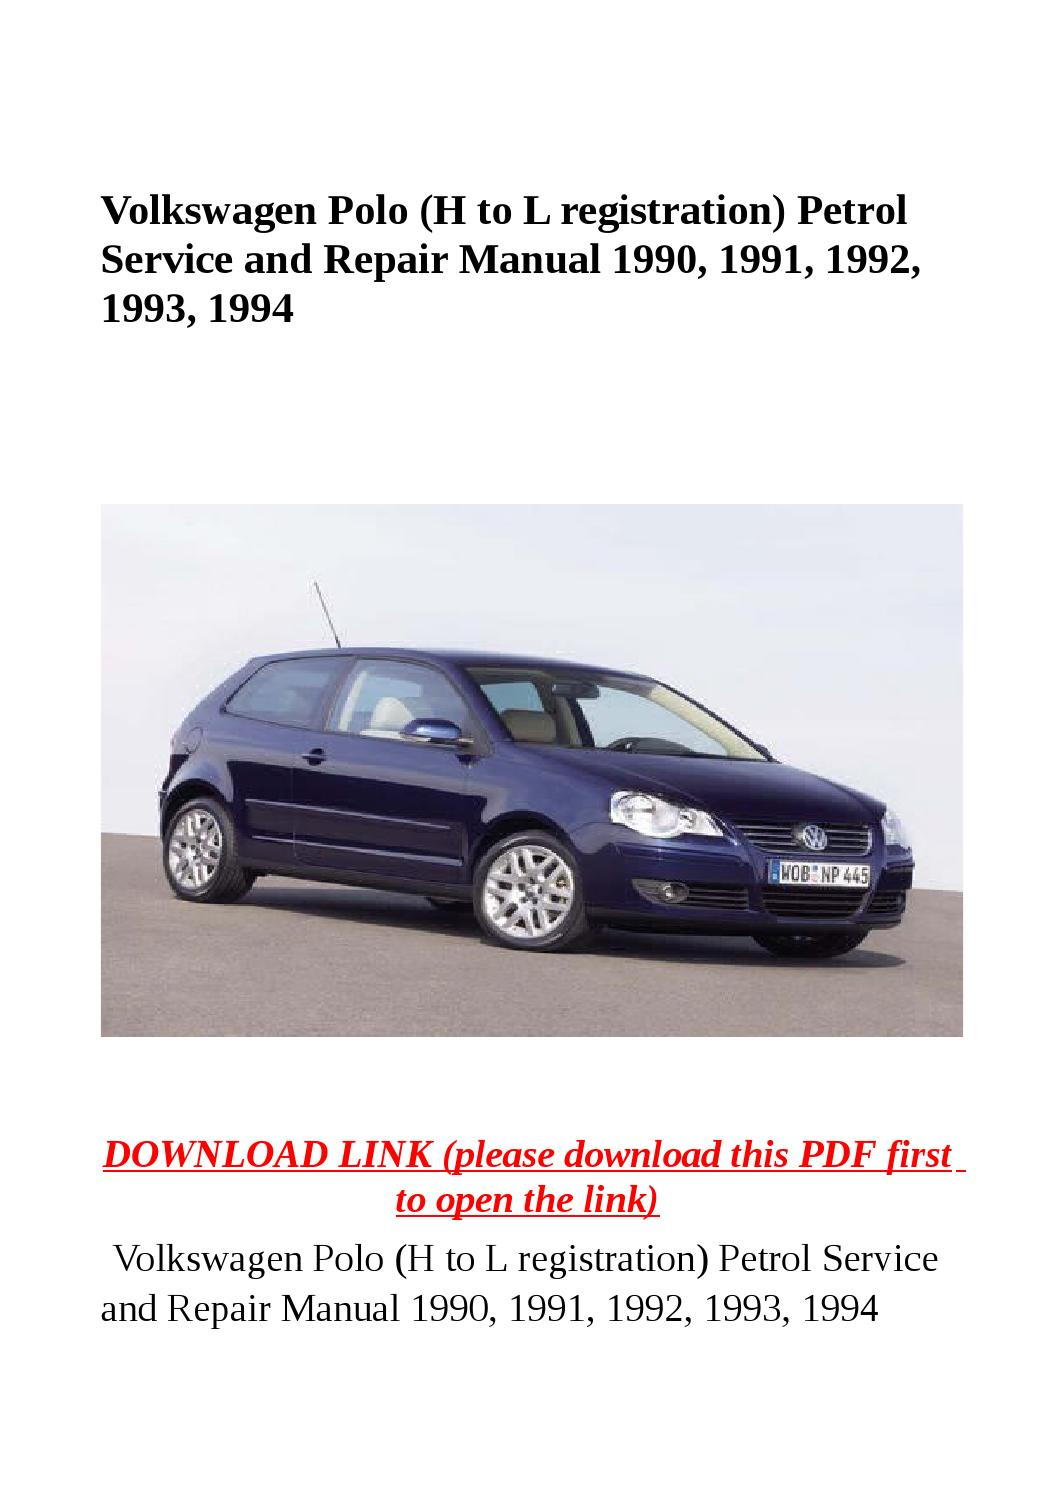 Volkswagen Polo  H To L Registration  Petrol Service And Repair Manual 1990  1991  1992  1993